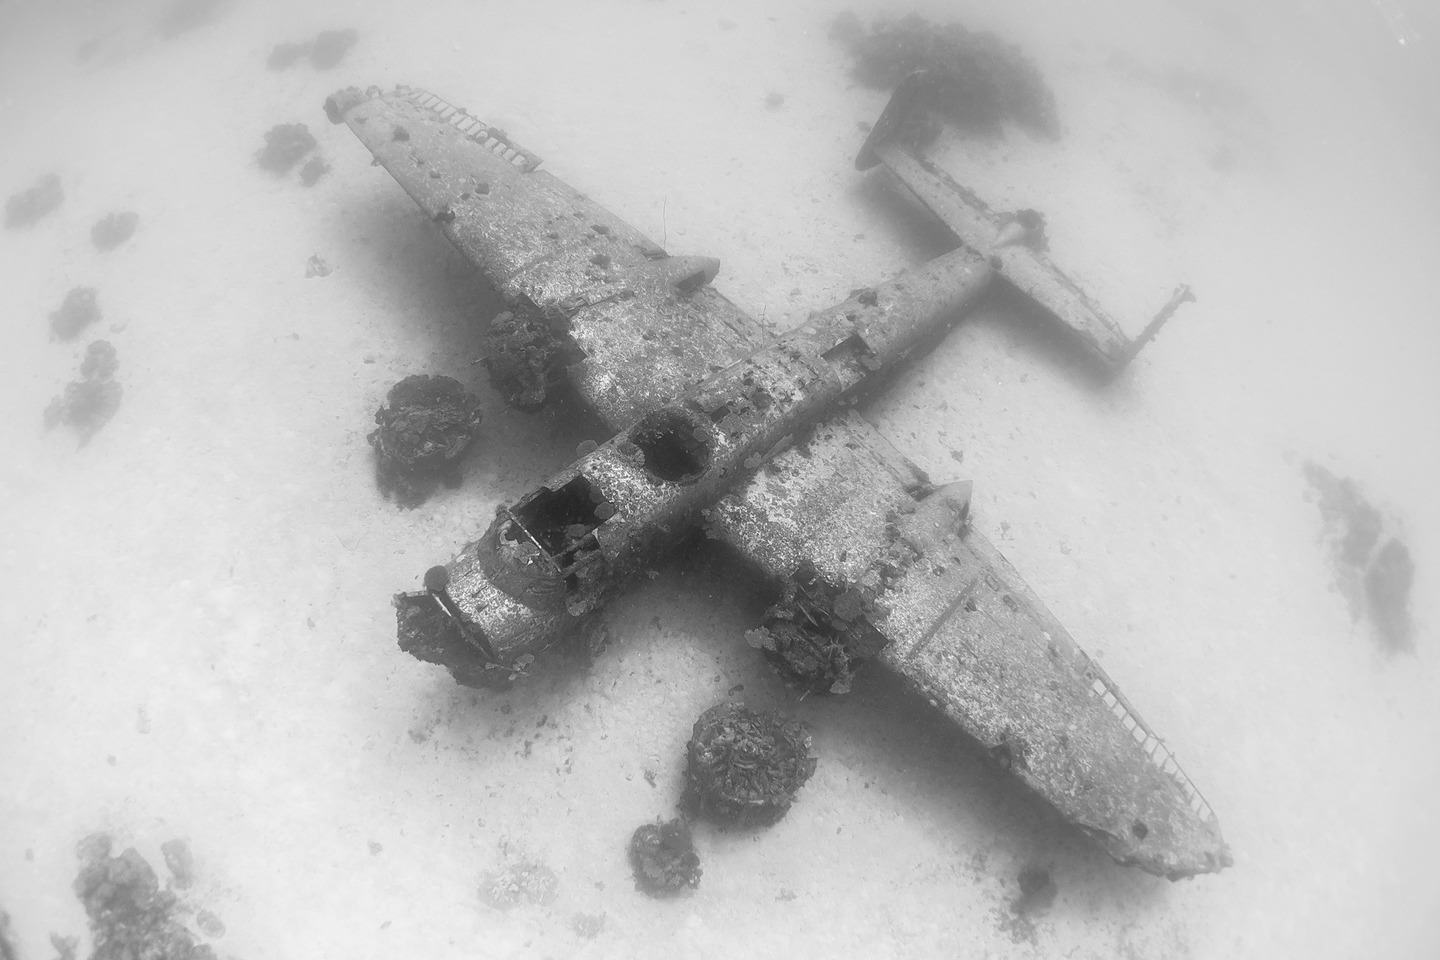 The Pacific Ocean Bed Is A Graveyard For World War II Planes dsc 4845